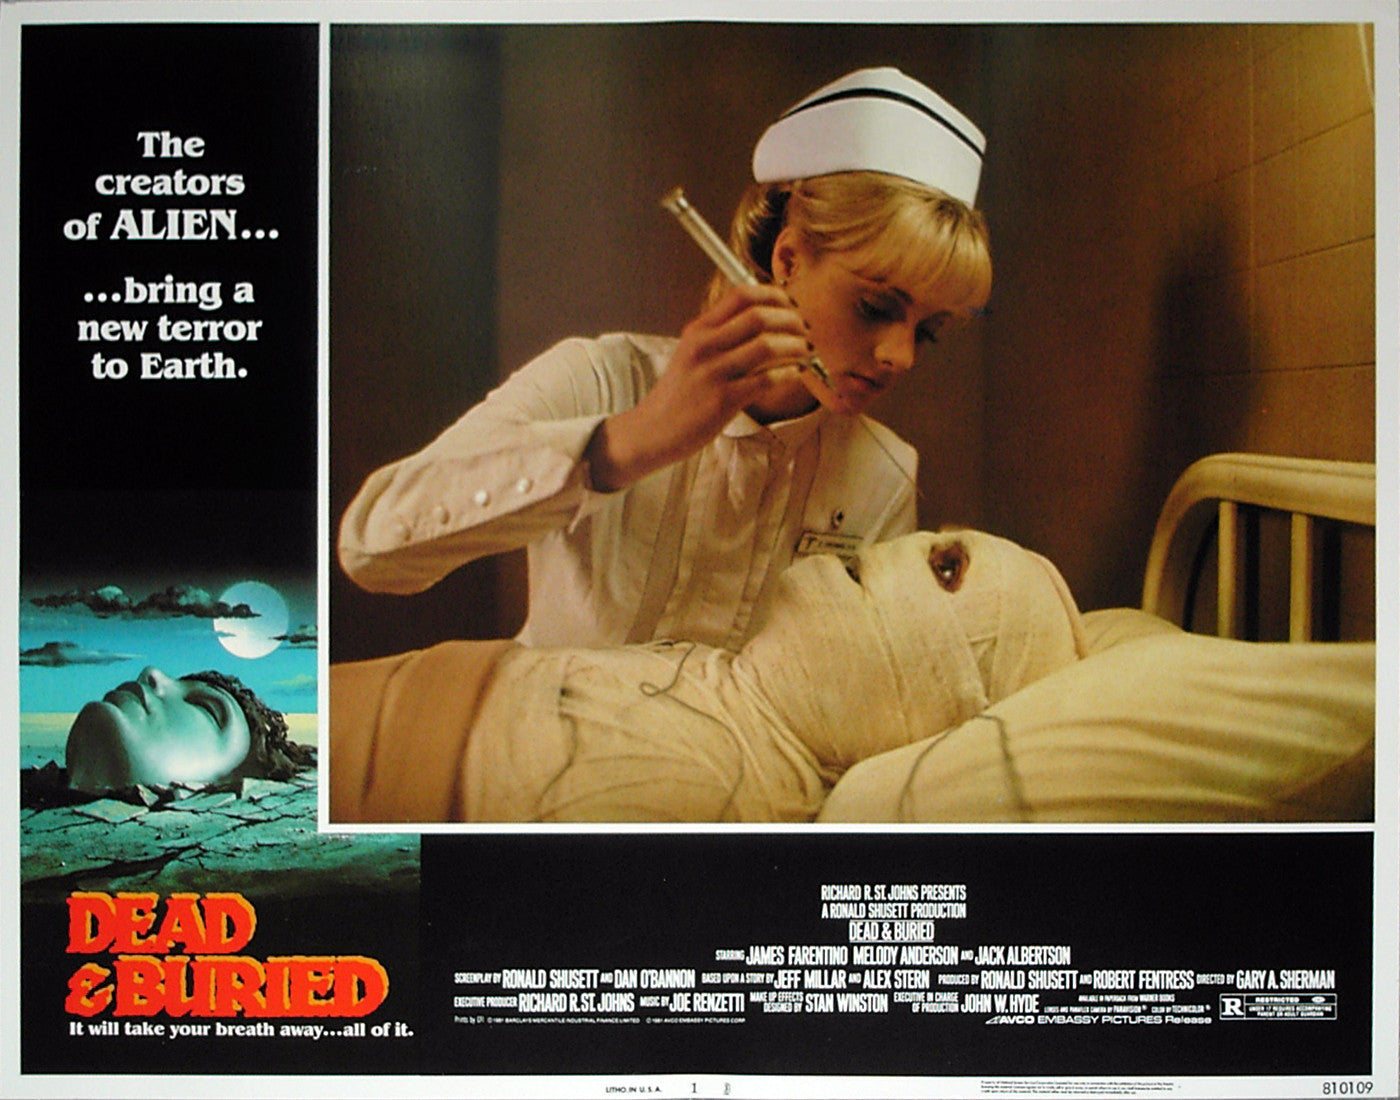 DEAD & BURIED - US lobby card v1